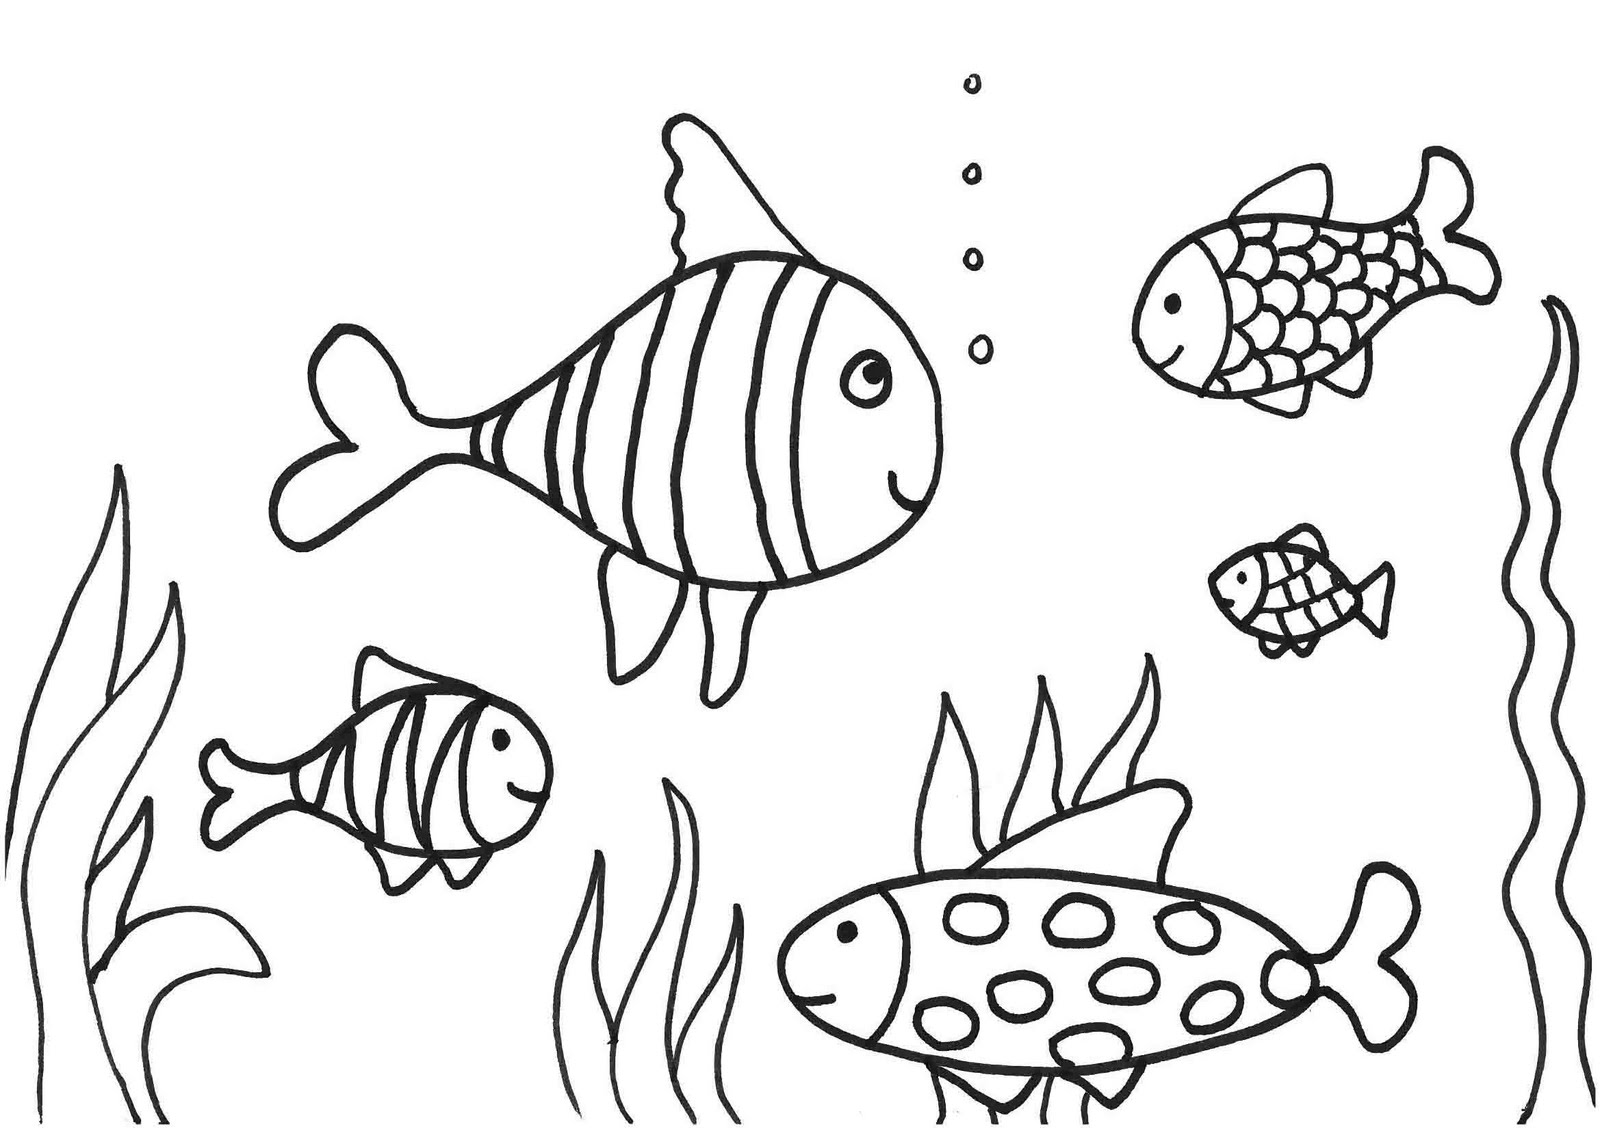 fish color fish coloring pages for kids 14 pics how to draw in 1 color fish